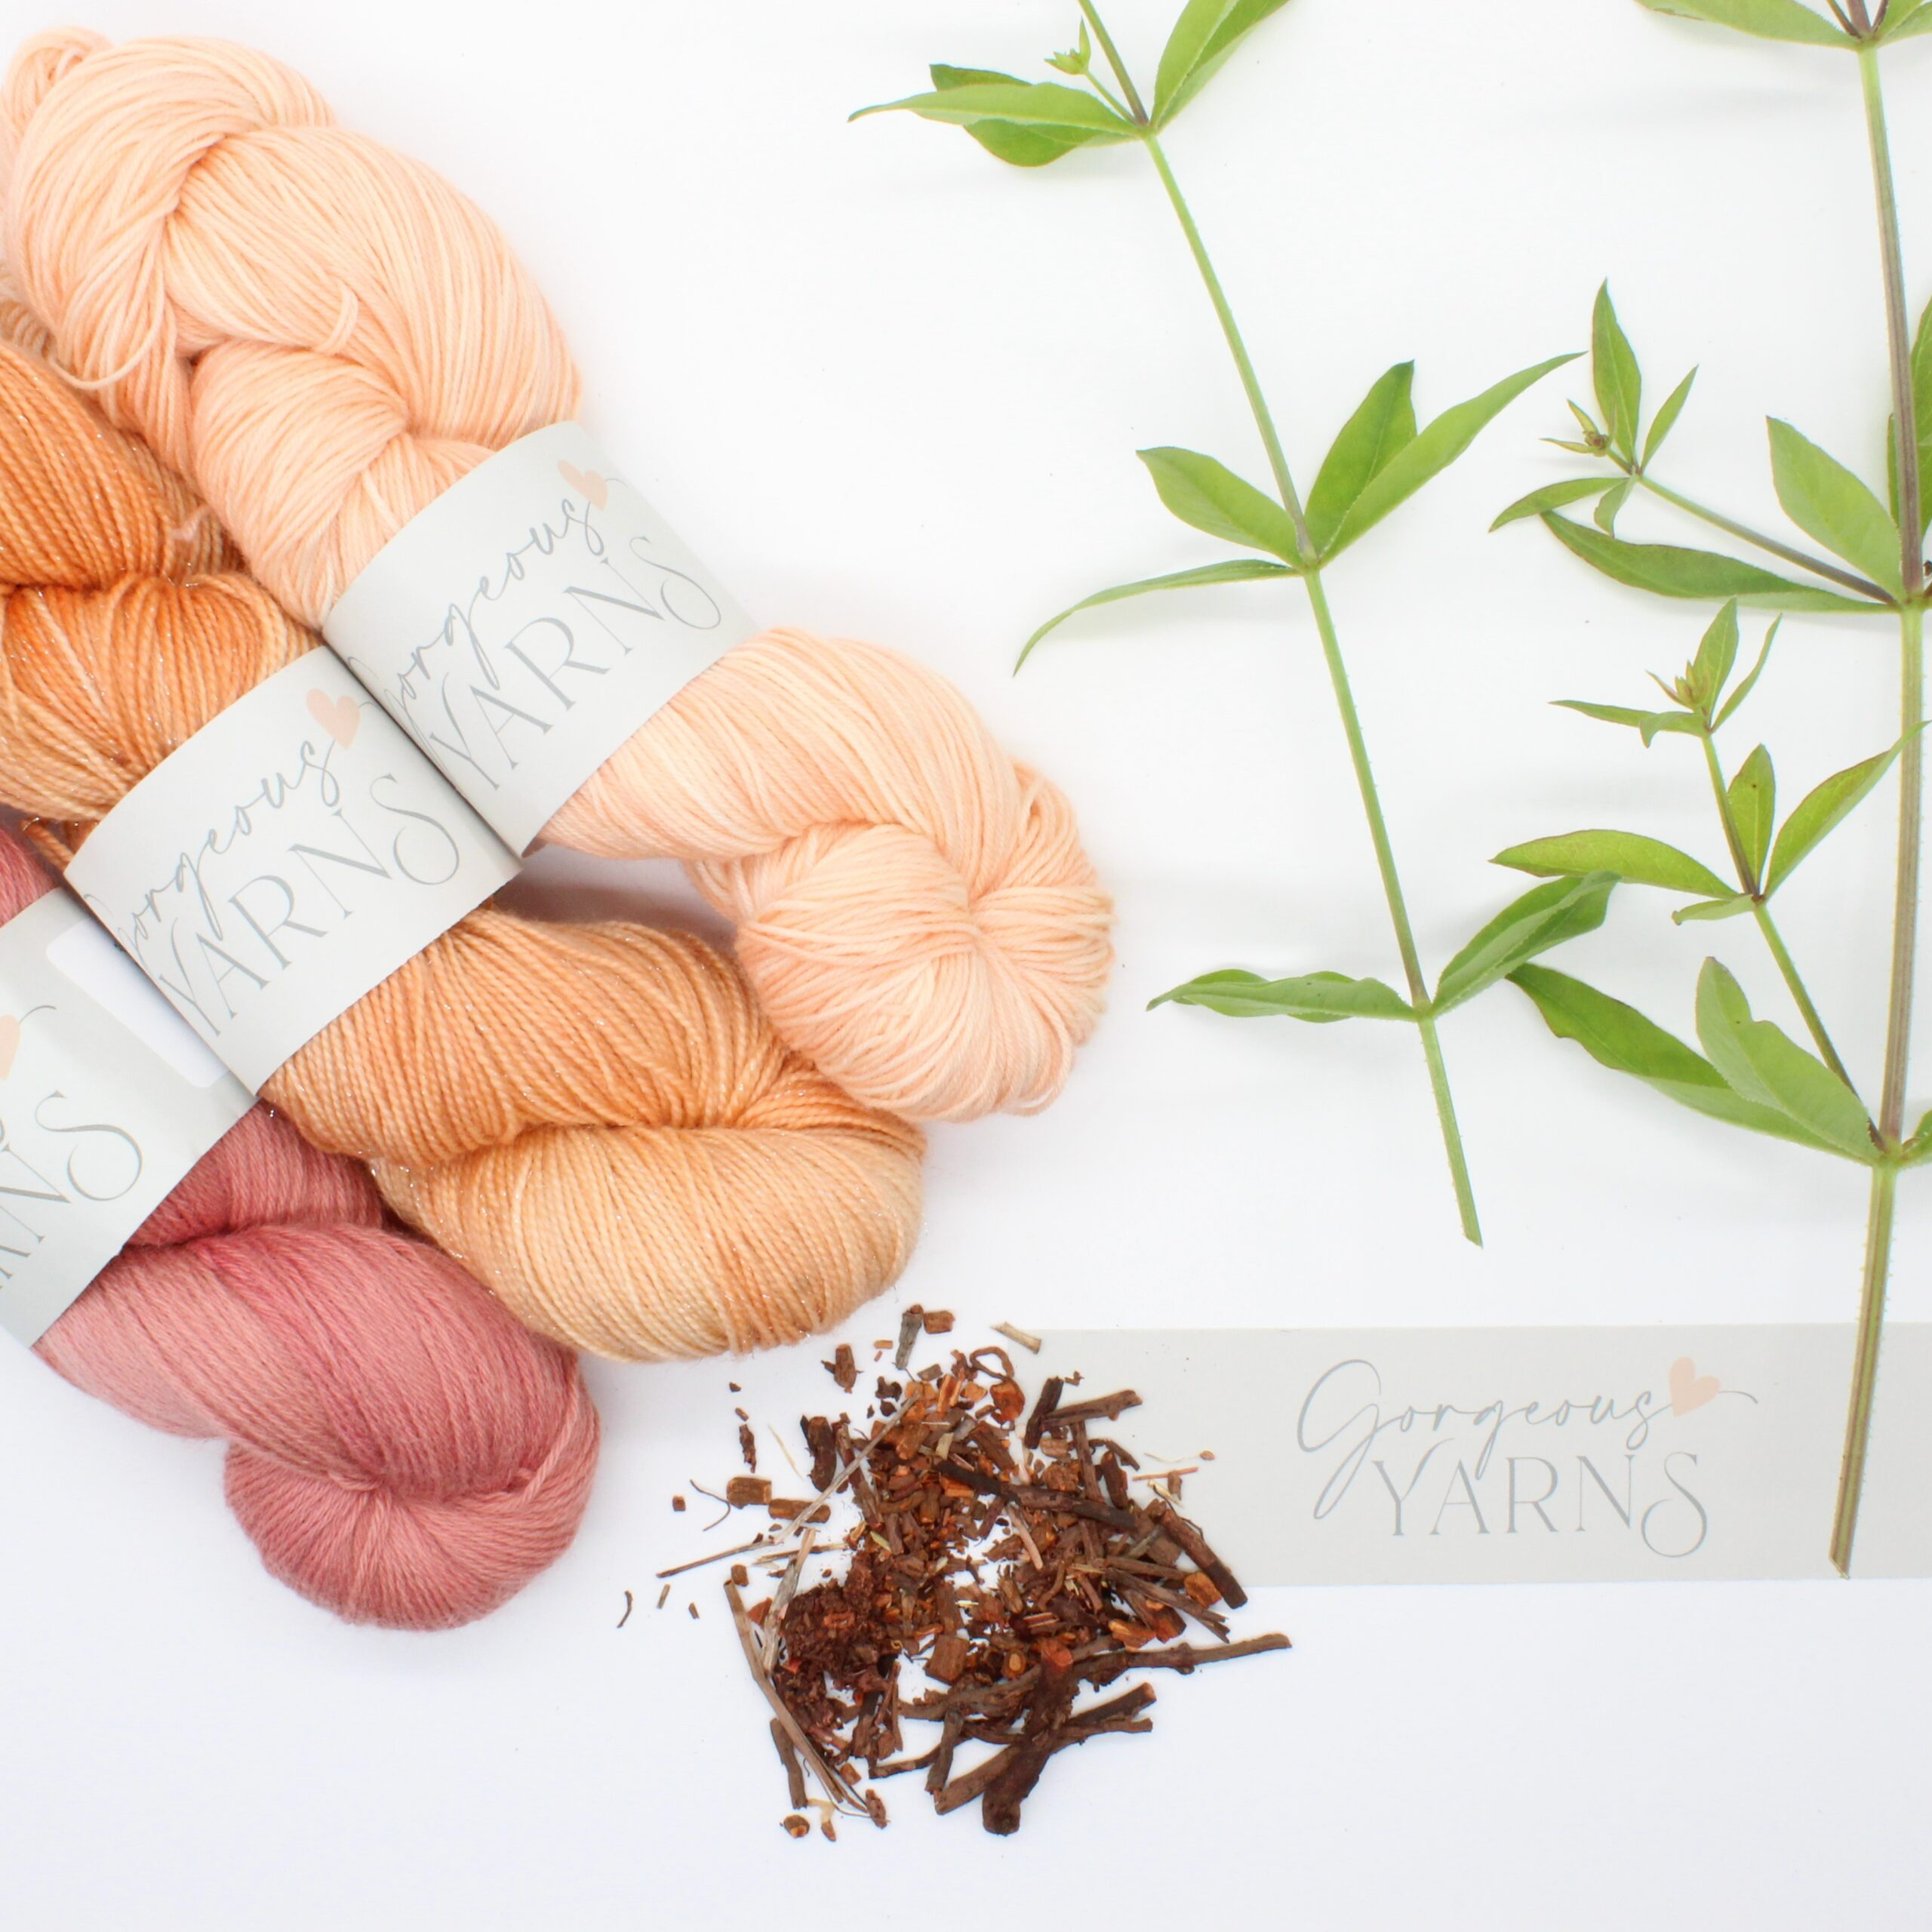 Natural Dyes give beautiful colours